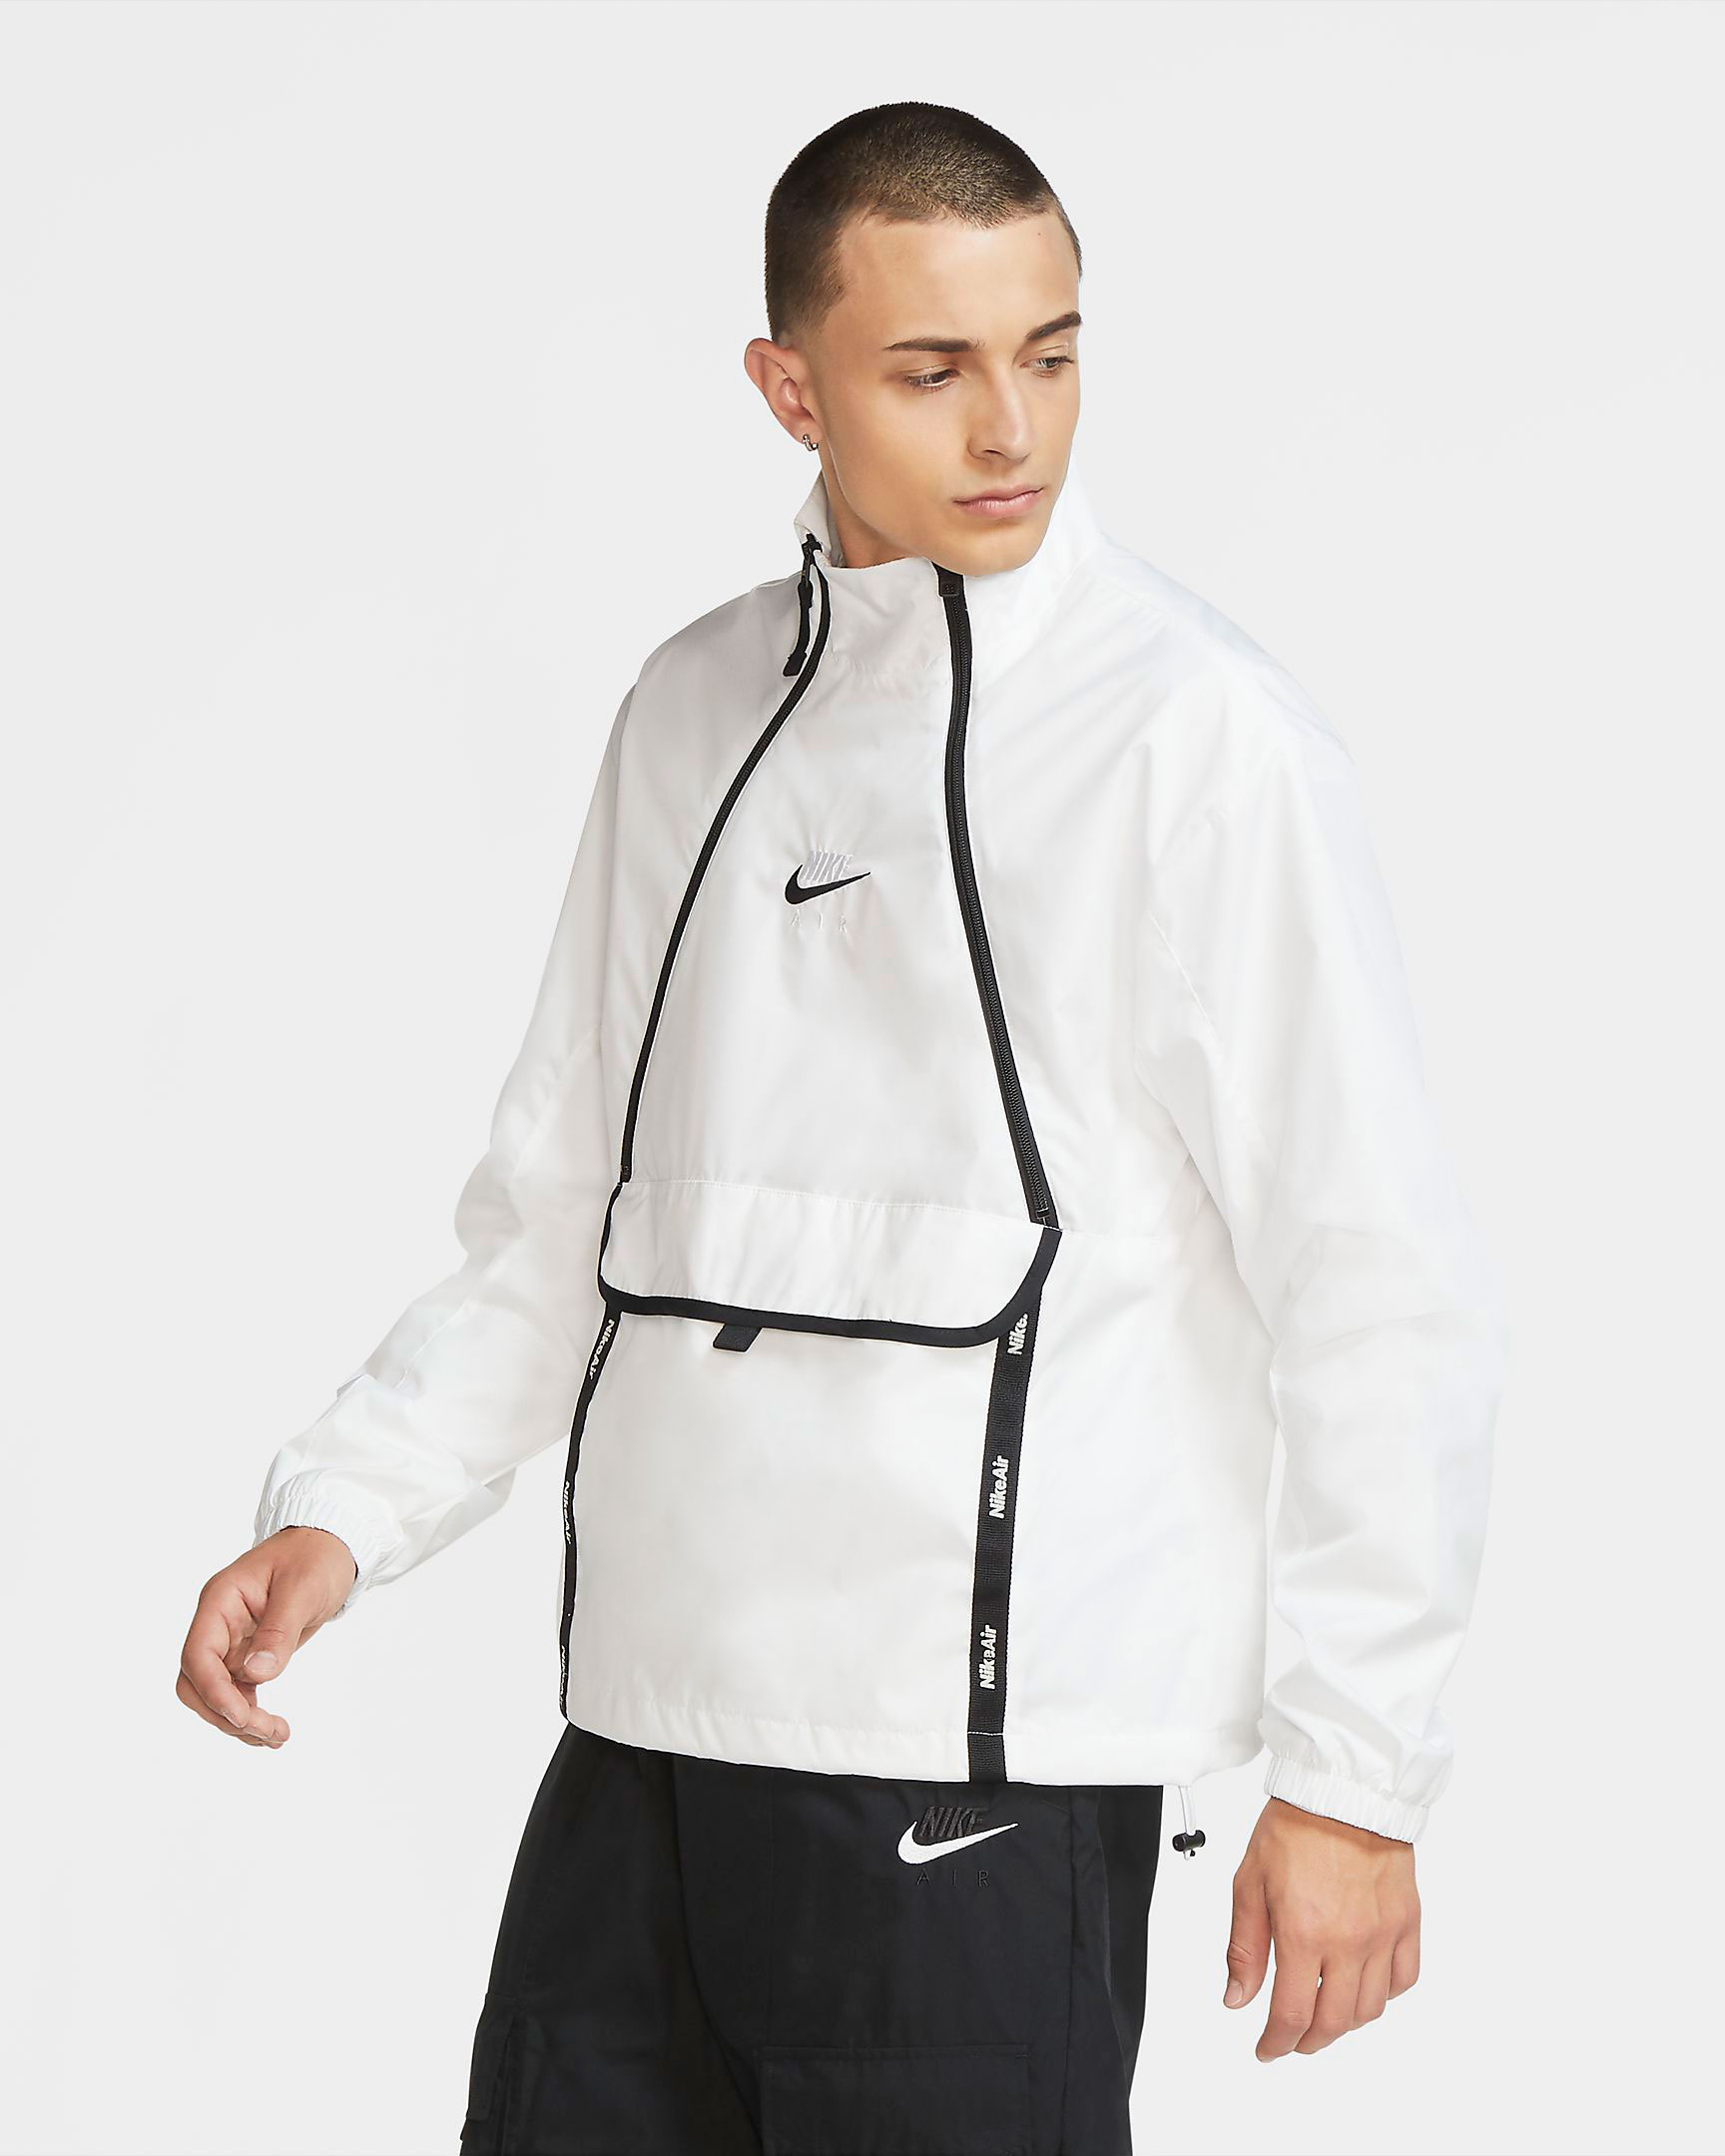 nike-air-utility-reflective-jacket-white-black-1